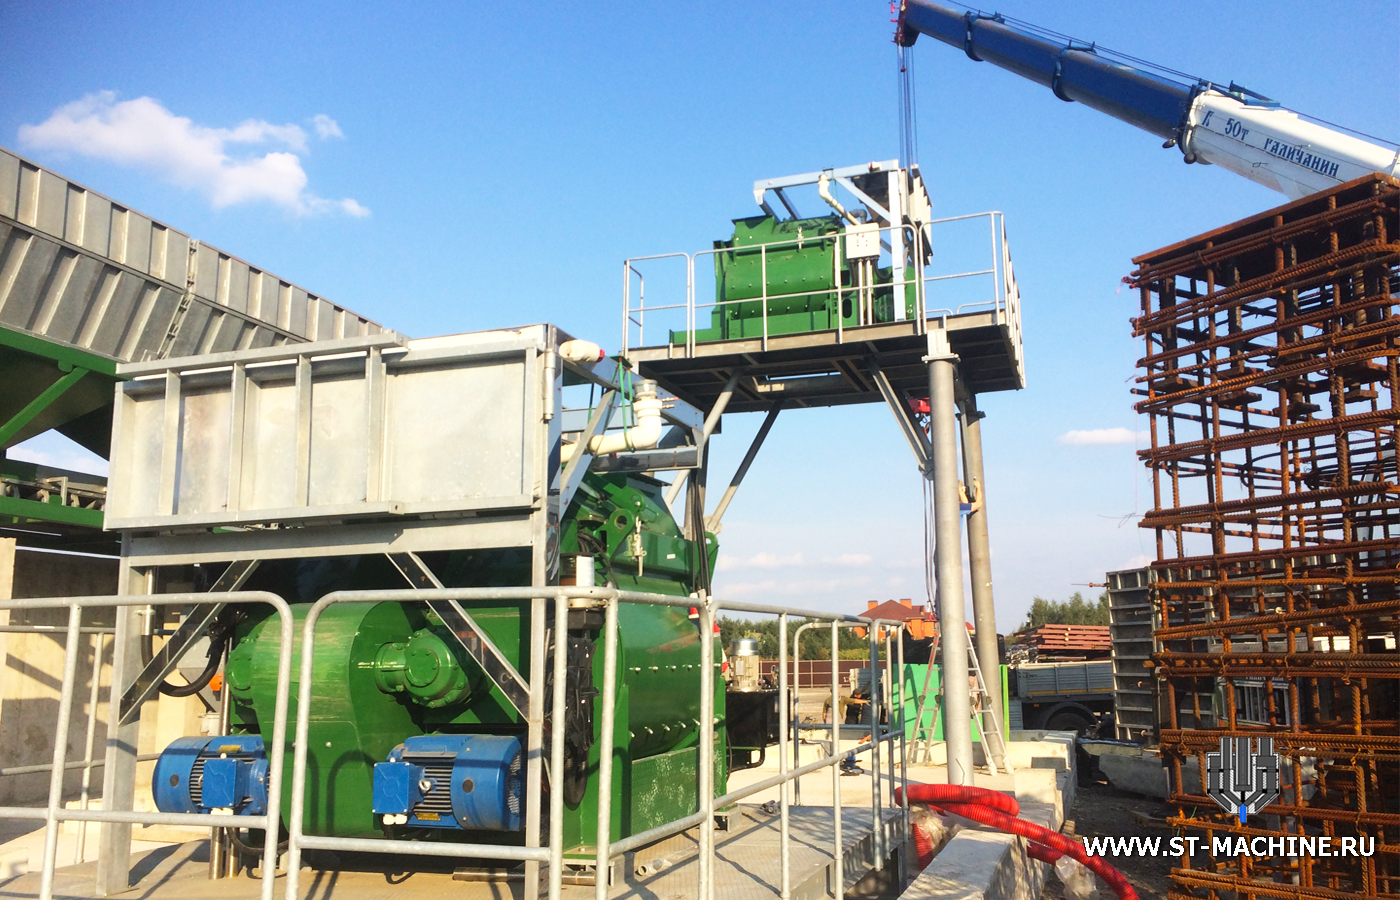 two shaft concrete mixers from russia.jpg